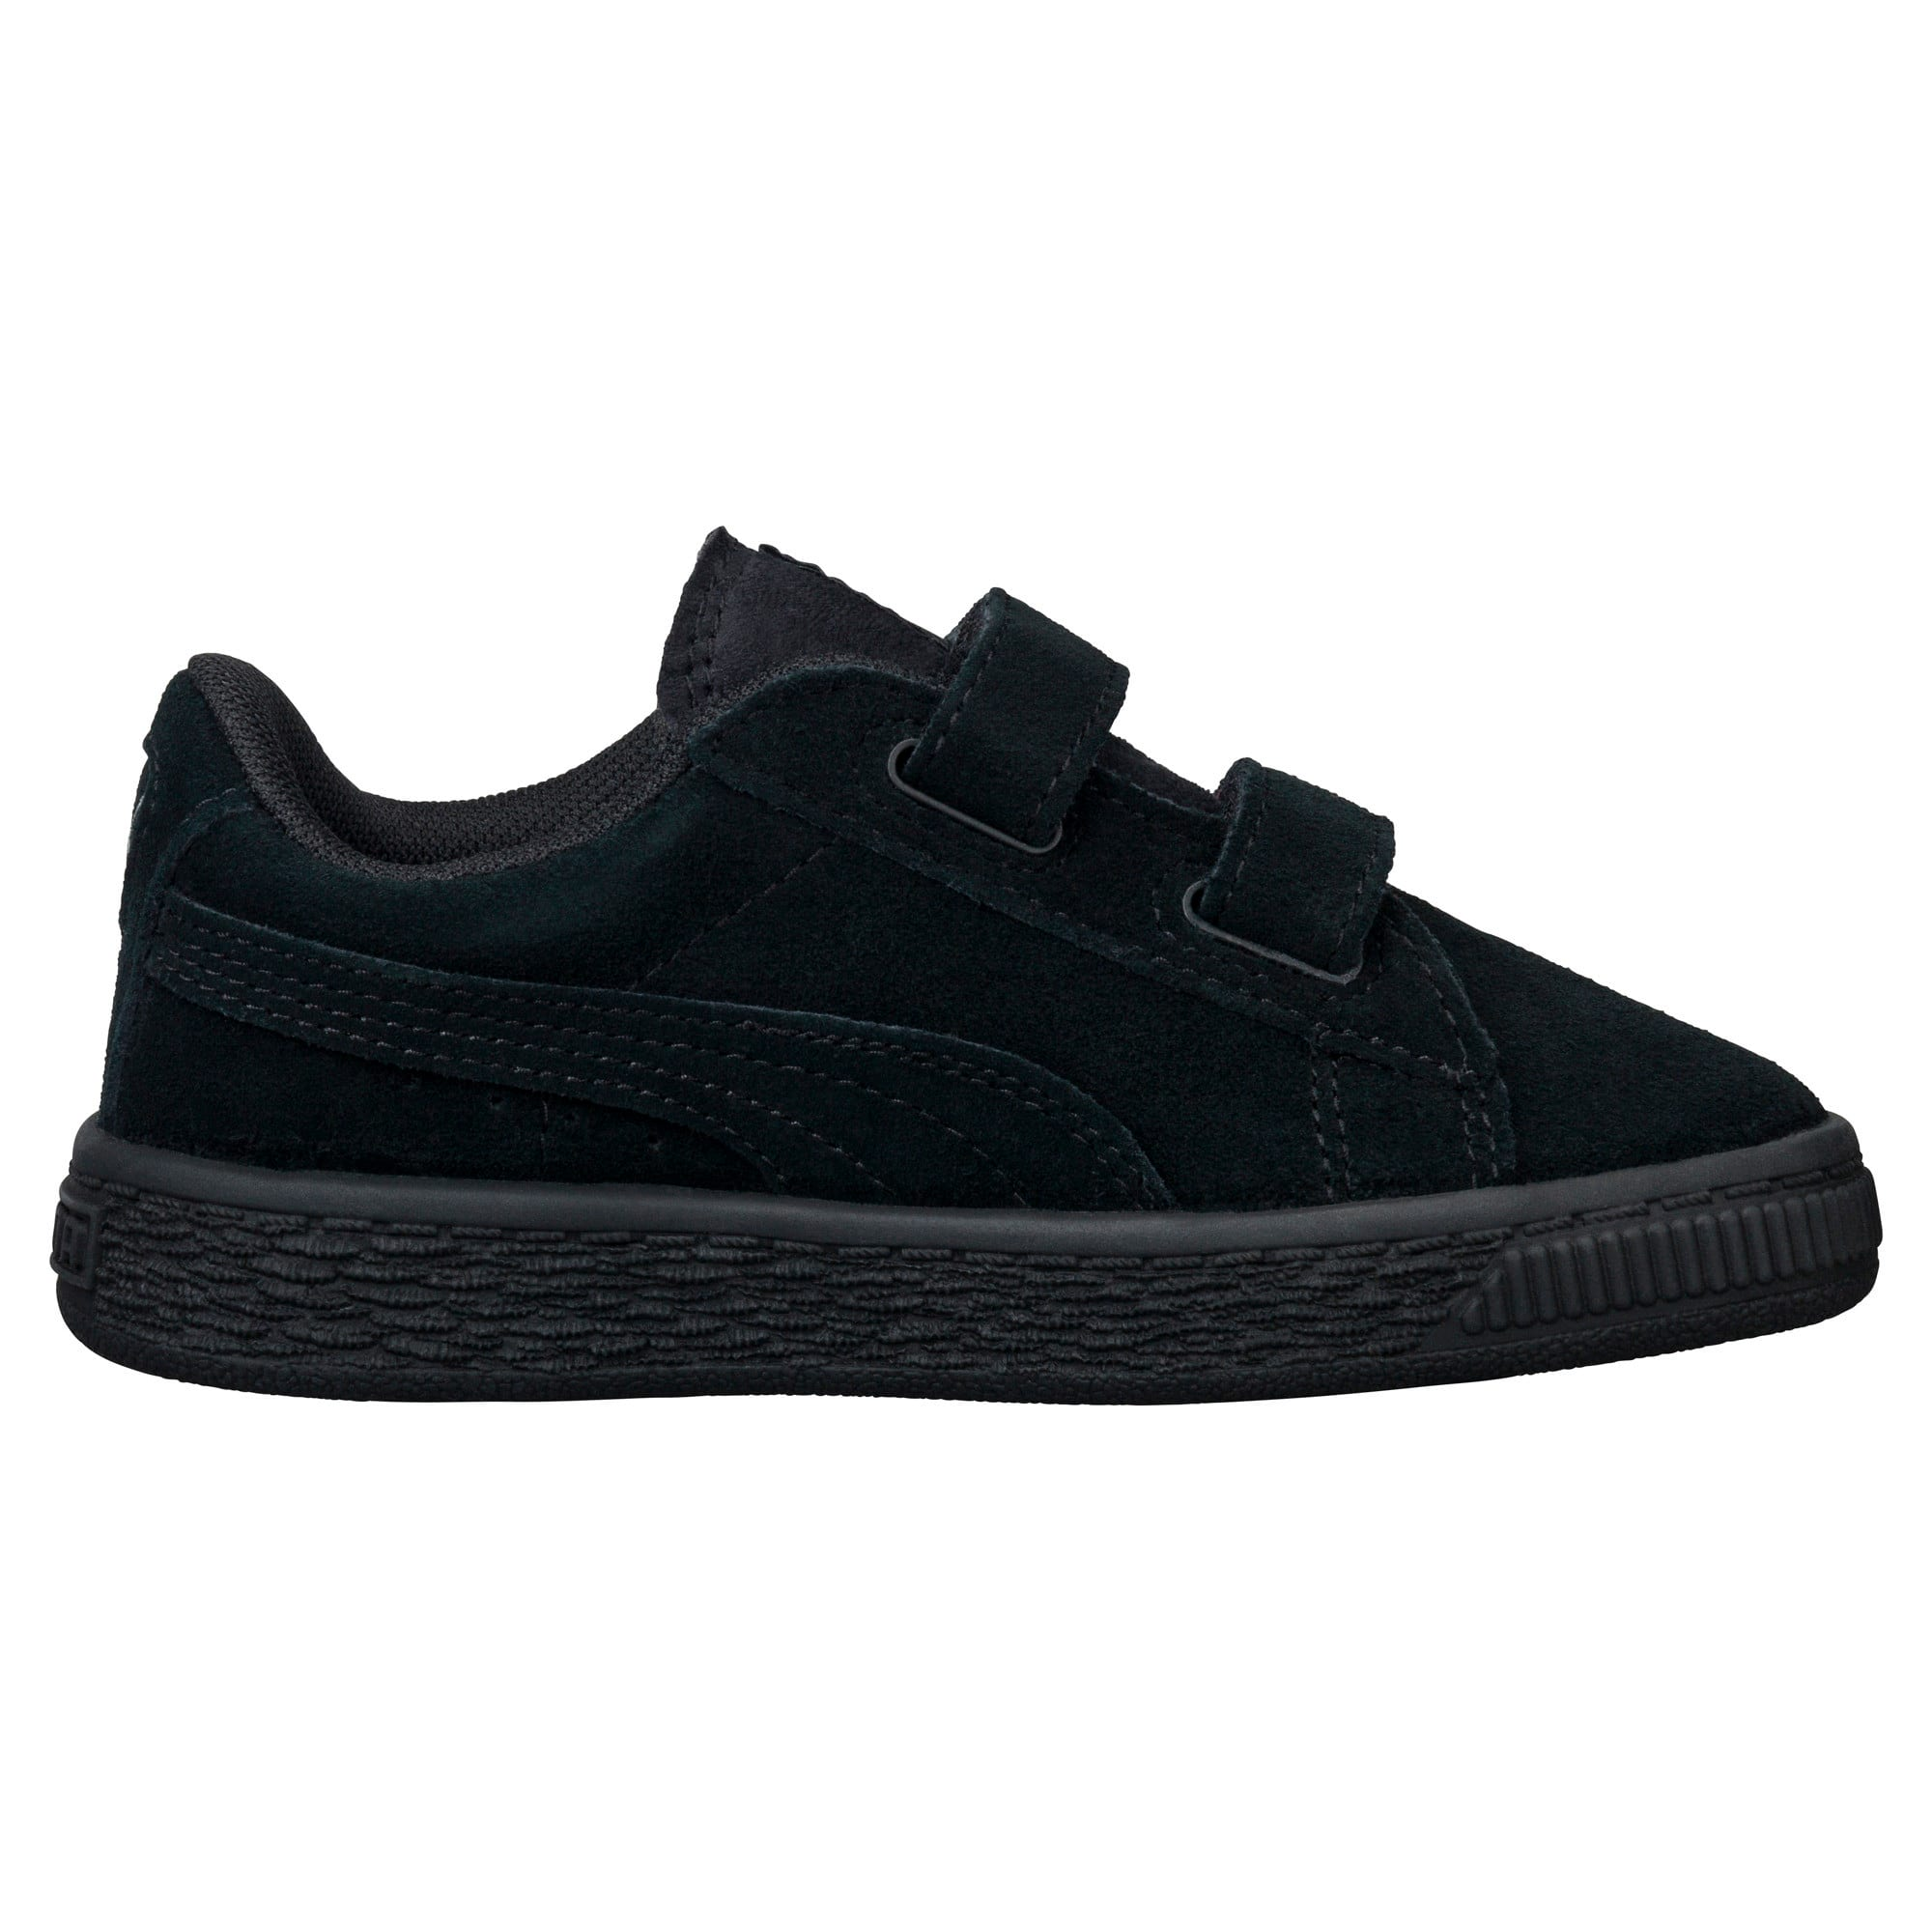 Thumbnail 3 of Suede Two-strap Babies' Trainers, Puma Black-Puma Silver, medium